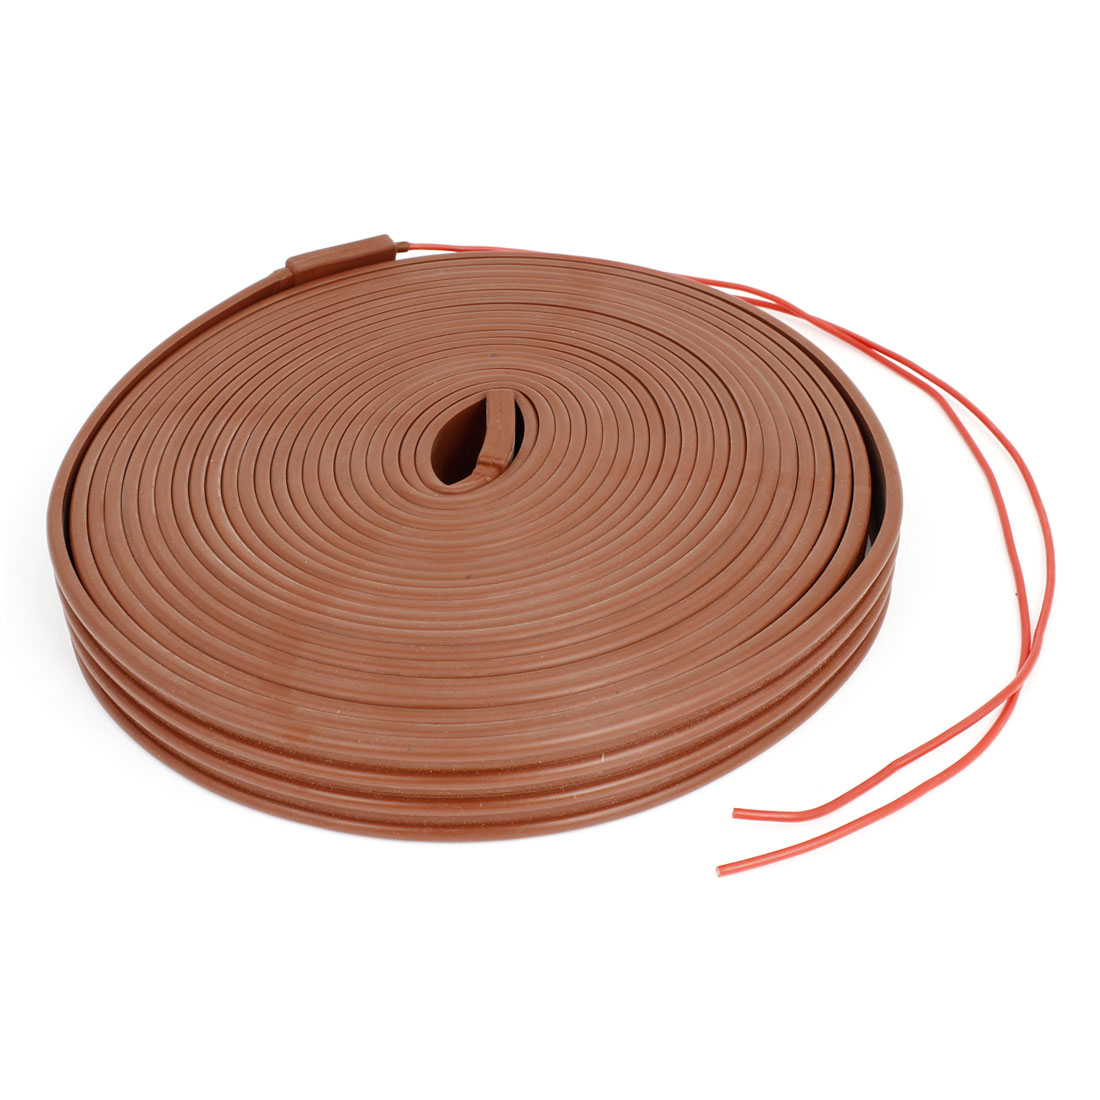 30mm Wide 10M Long Waterproof Silicone Band Heater Strip 110V Volt